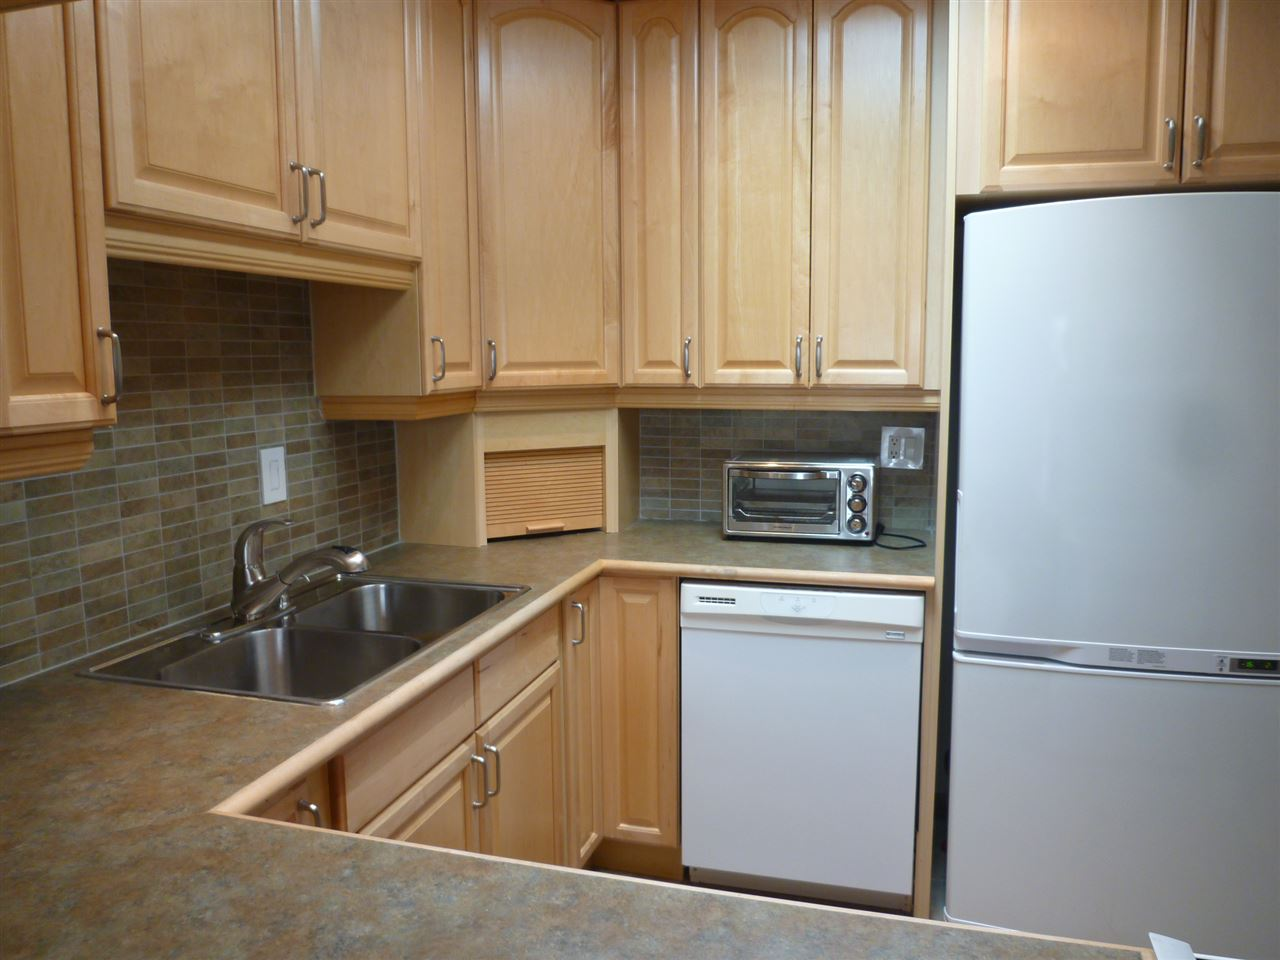 "Photo 6: 301 1040 FOURTH Avenue in New Westminster: Uptown NW Condo for sale in ""HILLSIDE TERRACE"" : MLS(r) # R2099693"